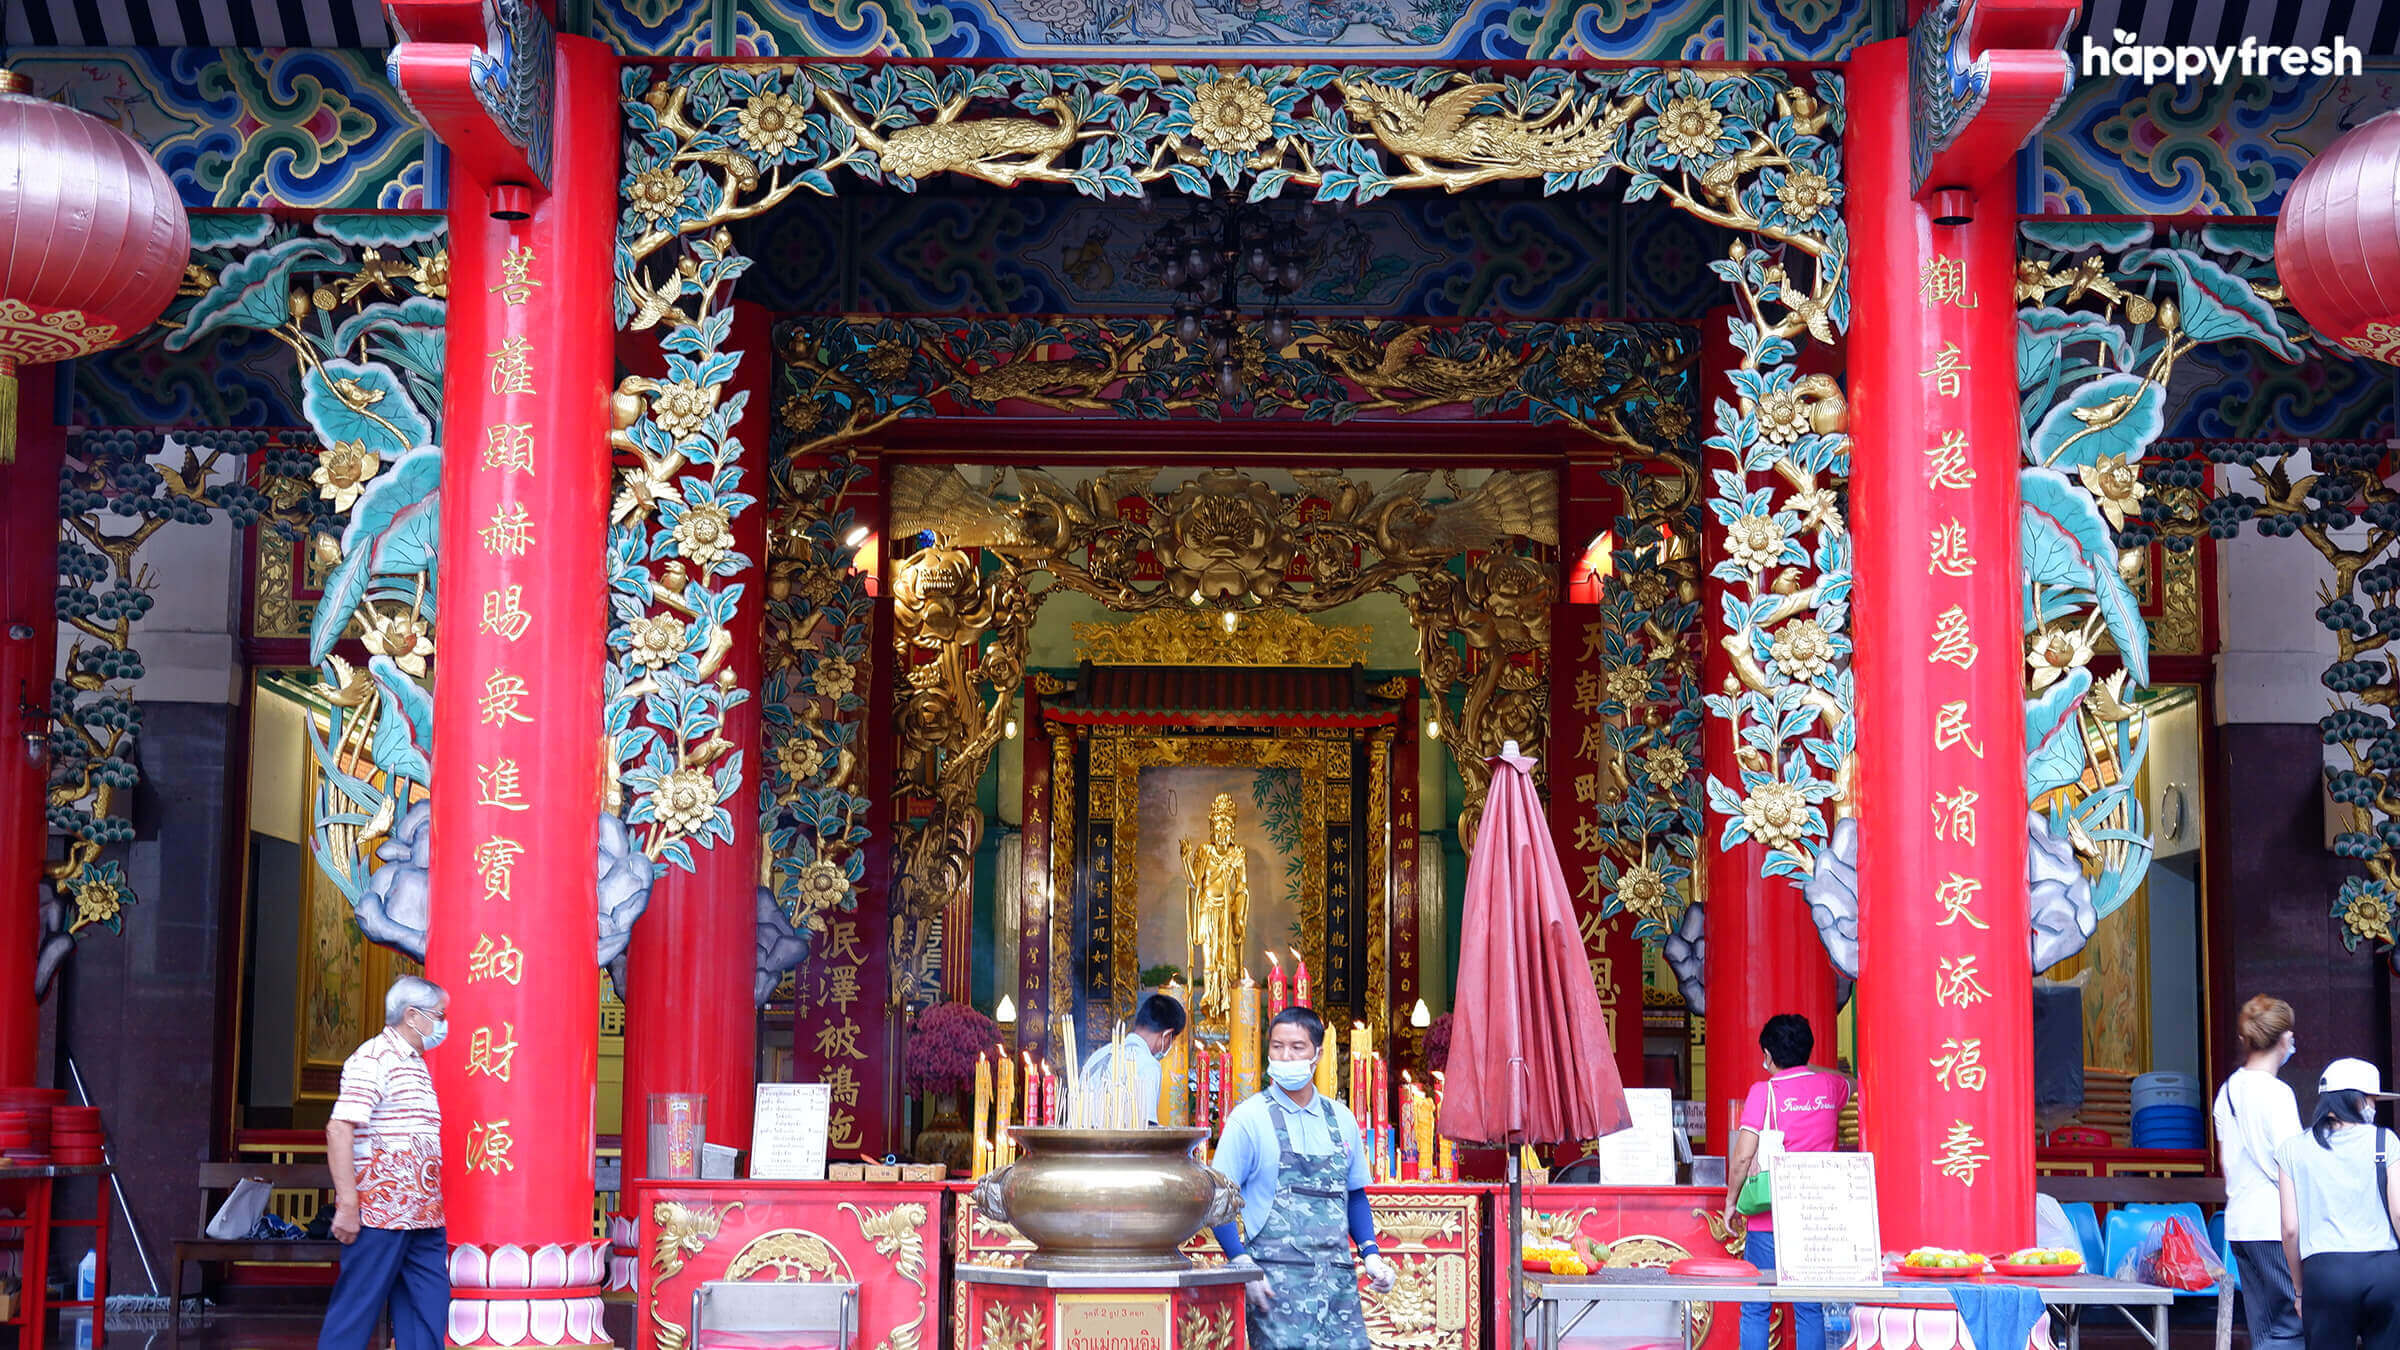 HappyFresh_Visit_6_Chinese_Shrines_In_Chinatown_Kuan_Yim_Shrine